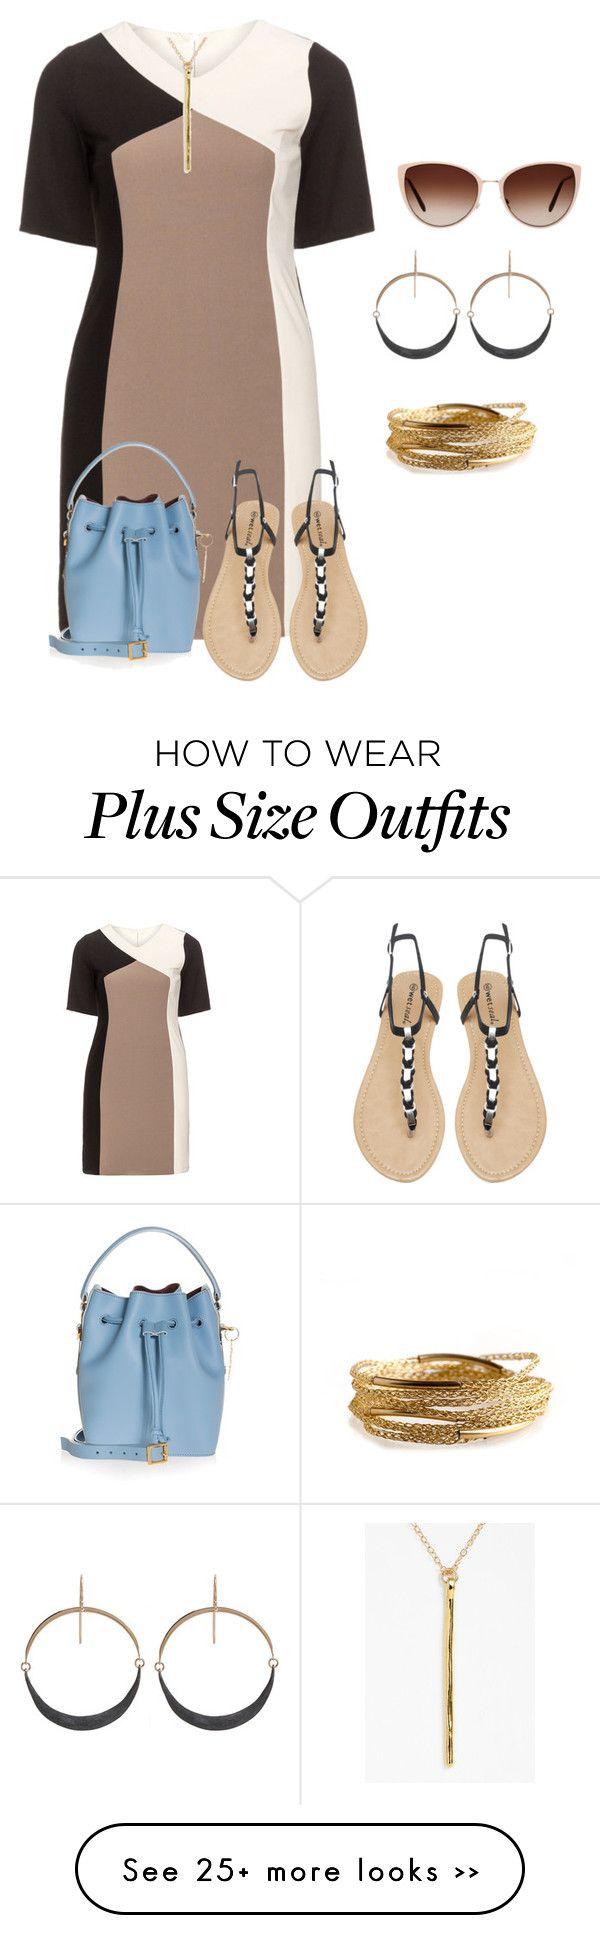 """plus size tuesday nails and shopping"" by kristie-payne on Polyvore"